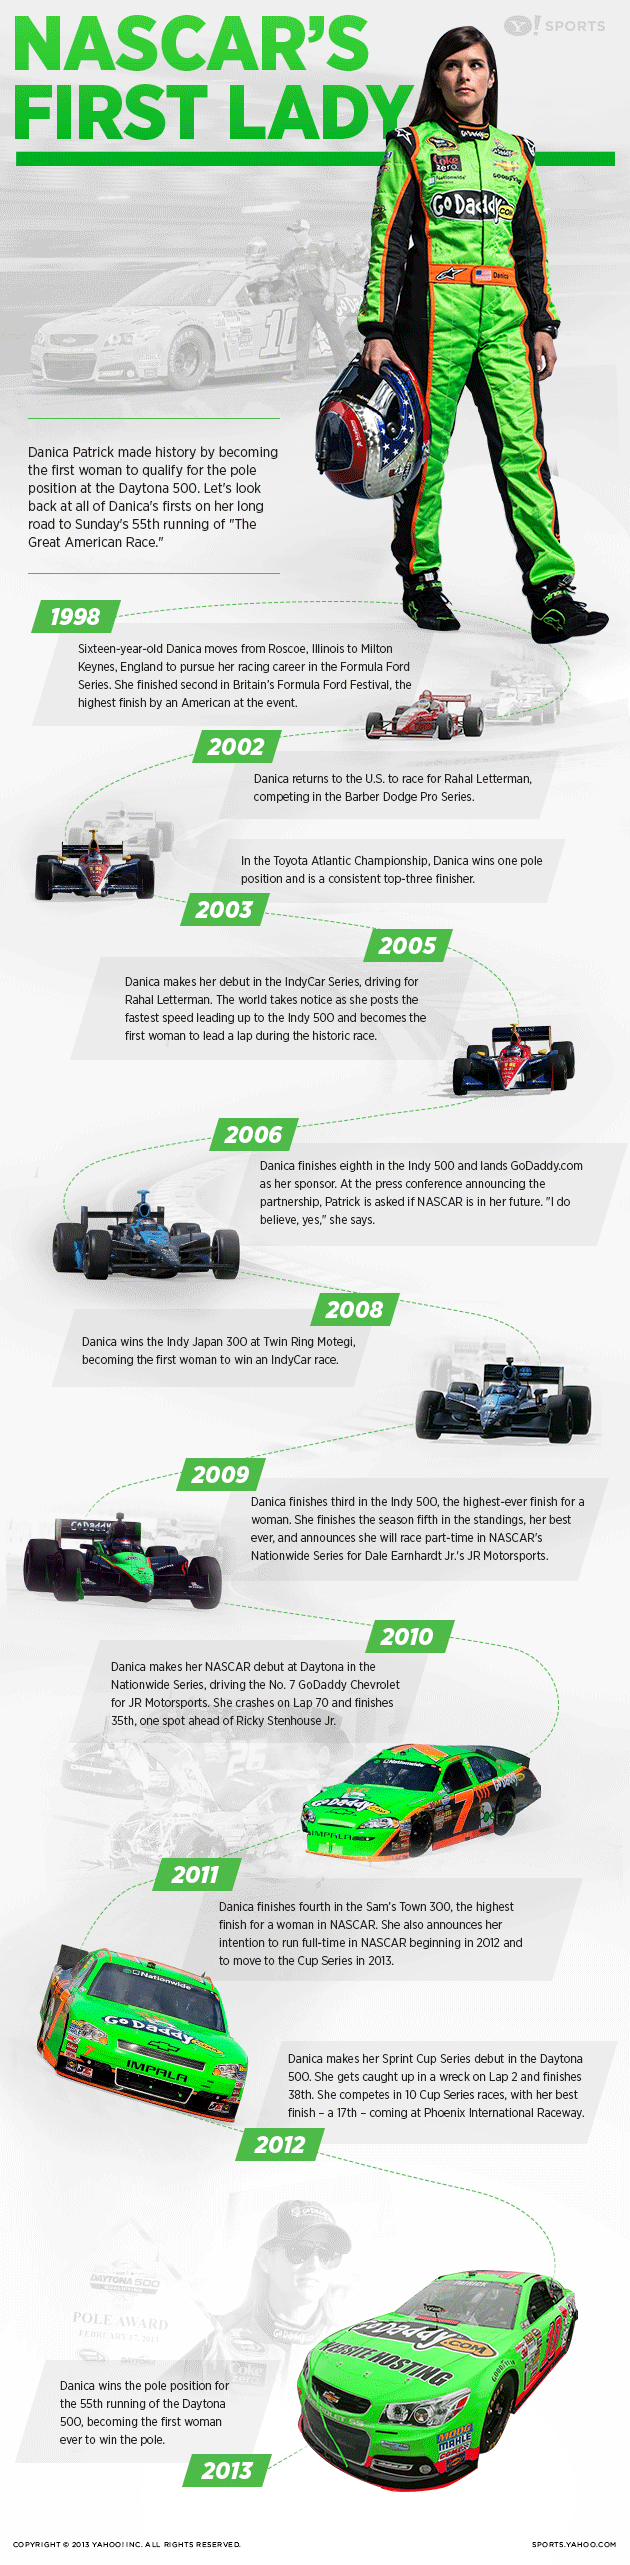 Infographic: Danica Patrick's career highlights